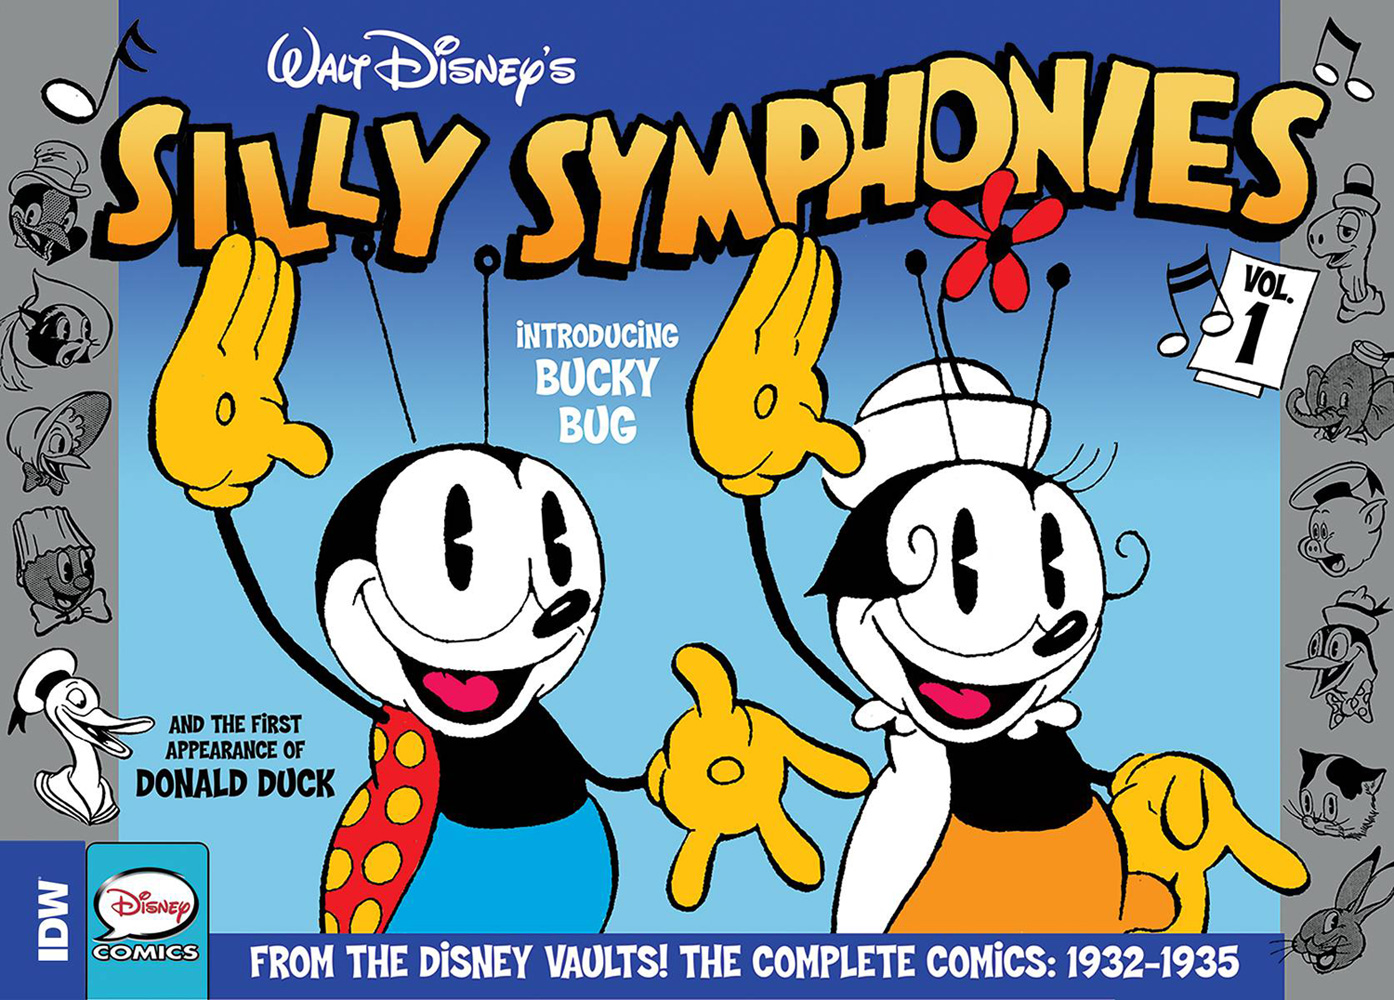 Walt Disney's Silly Symphonies: The Sunday Newspaper Comics Vol. 1